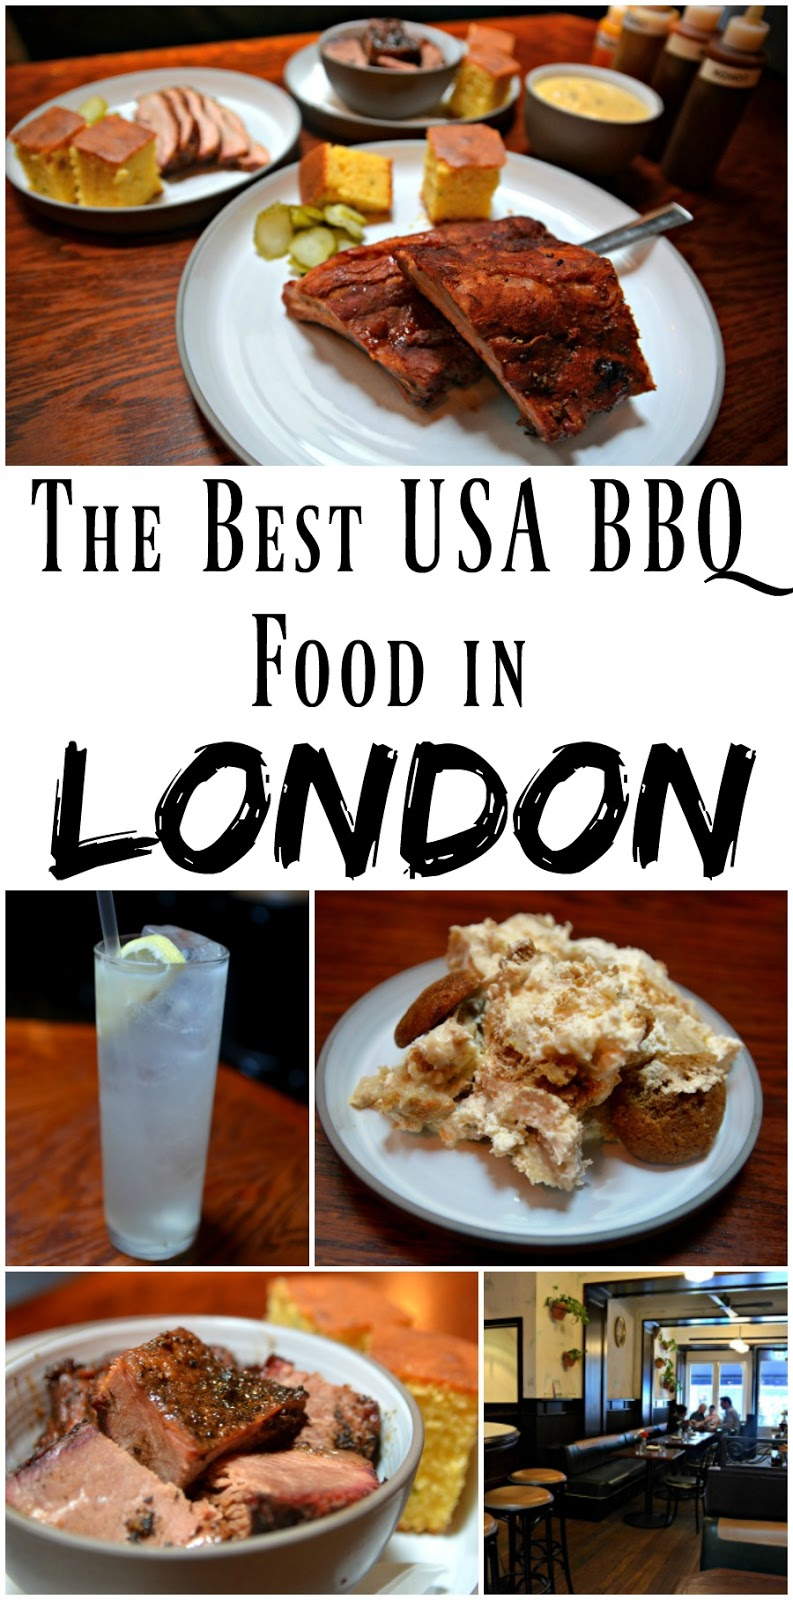 Pin for later: THE BEST BBQ FOOD IN LONDON! Shotgun BBQ is run by a Mississippi native, and he knows a thing or two about American BBQ food. This is hands down the best BBQ place in London, set in a super cute restaurant right in Soho, the brisket and pork belly are must-orders!